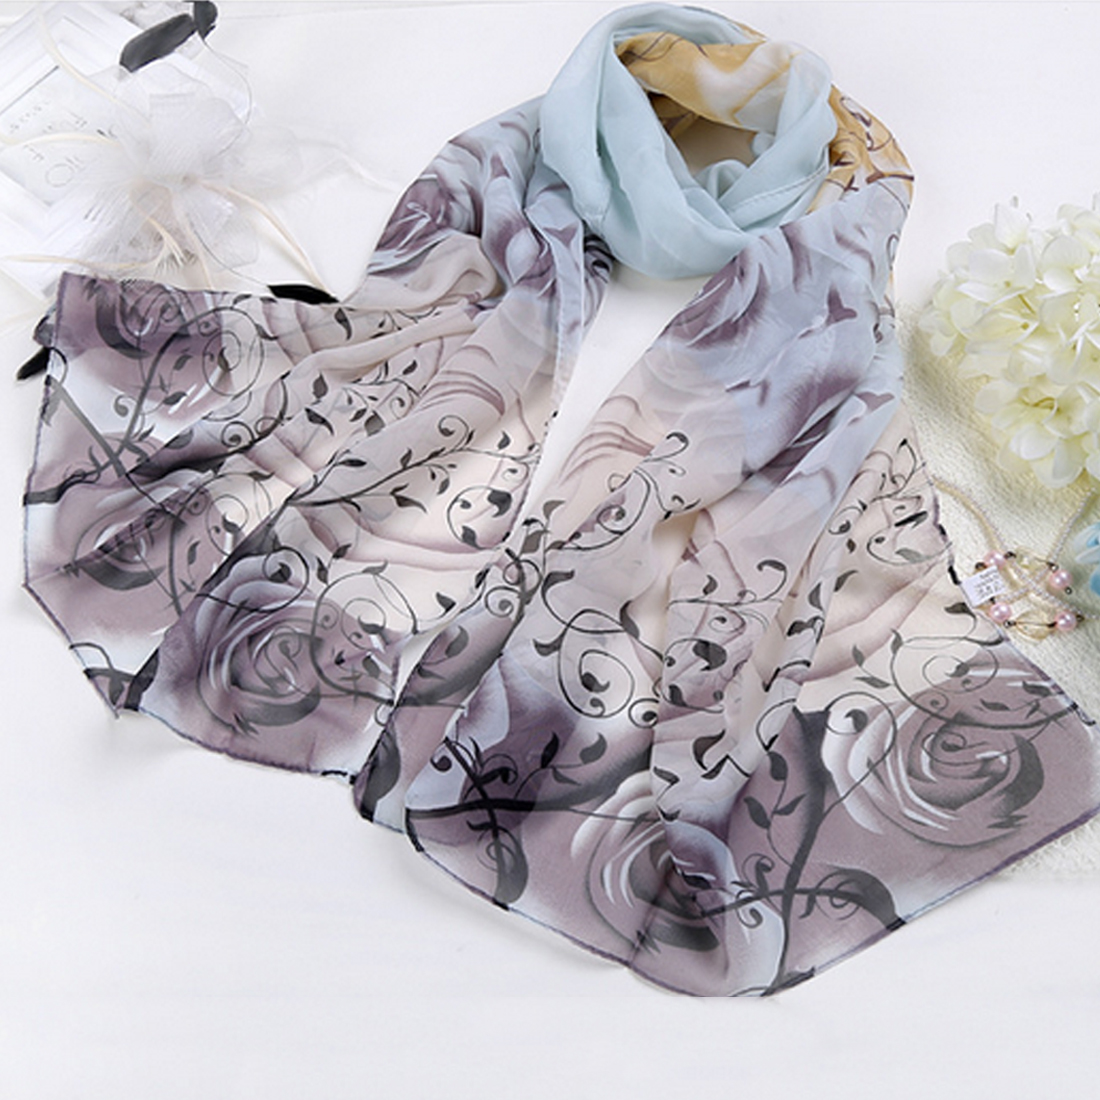 Comfortable India Promotion Rose Print Chiffon Polyester Scarves Woman Thin Shawl Turban Belt Hijab Fashion Arabic Scarfs Wrap